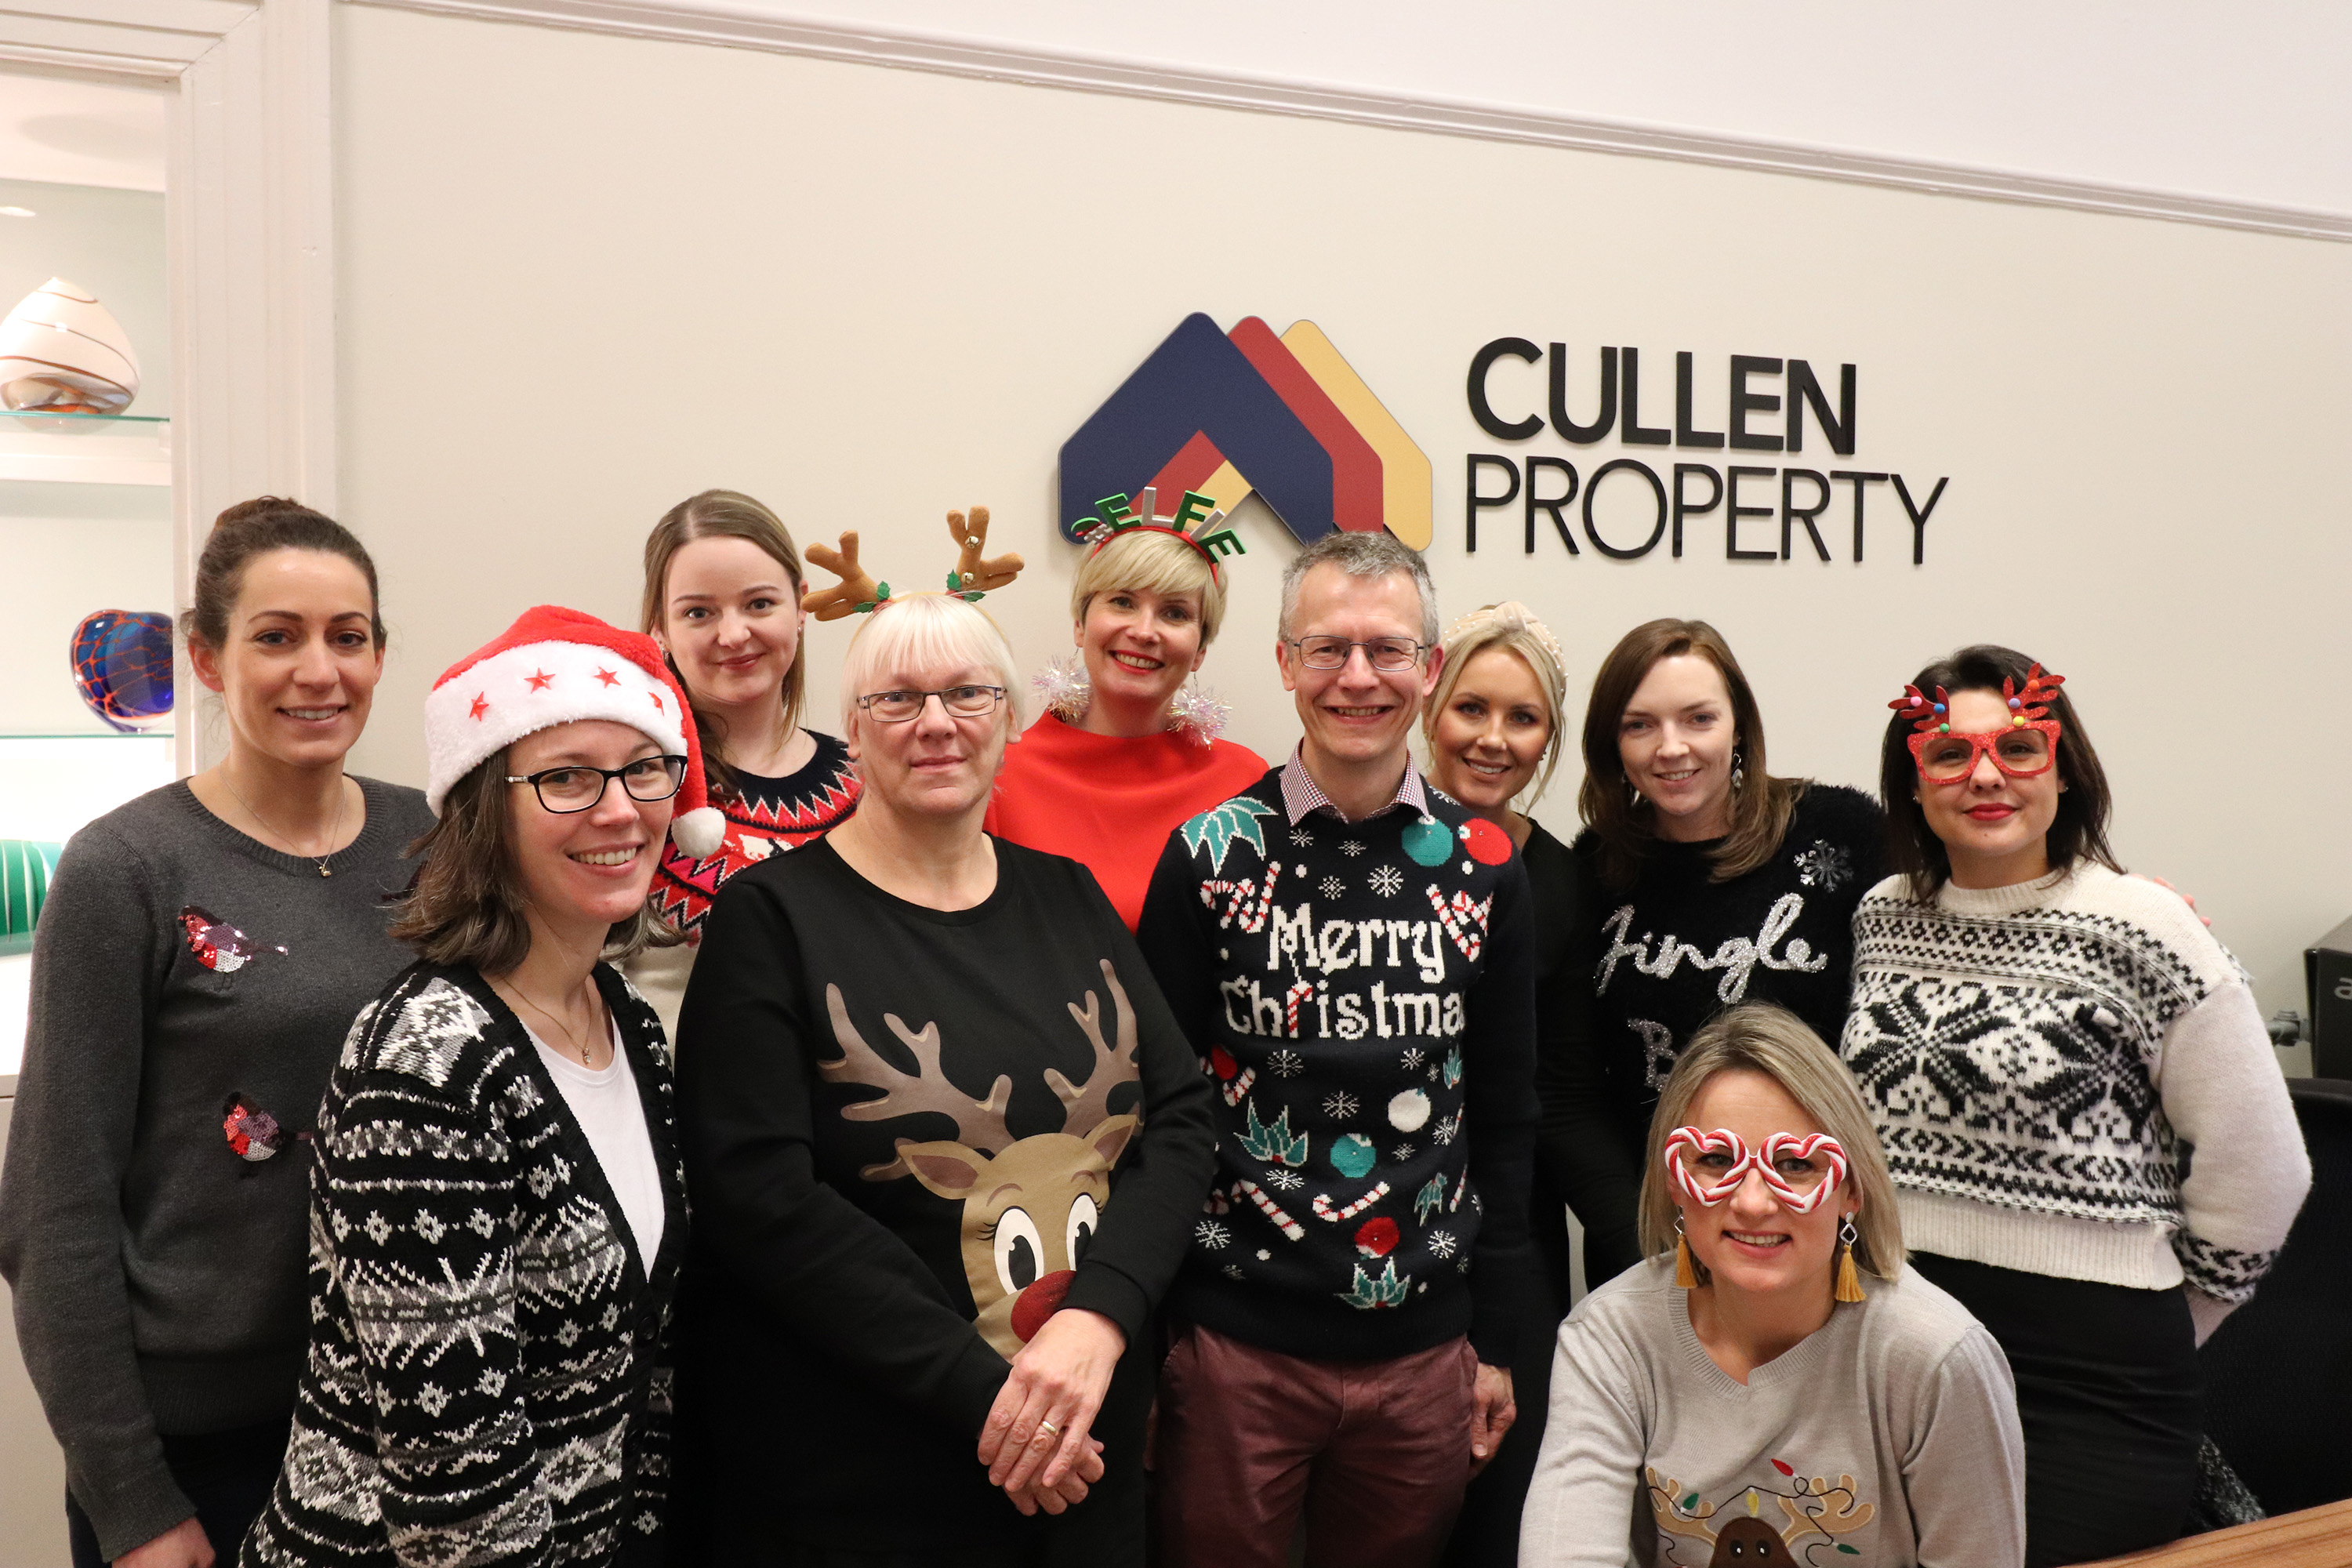 Happy Holidays from all at Cullen Property